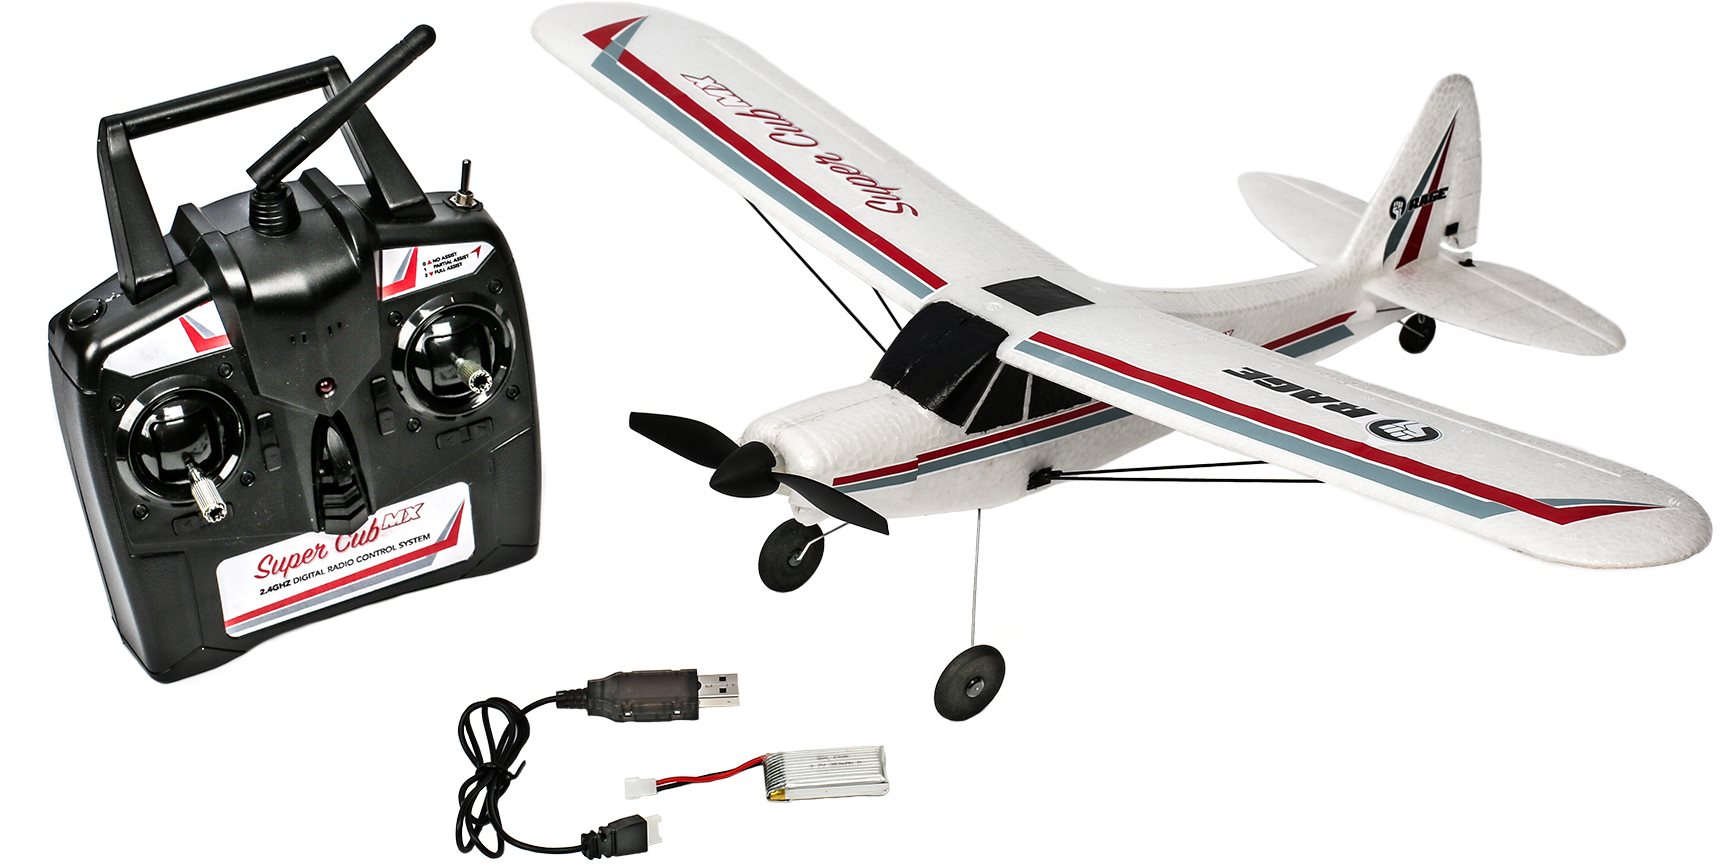 Rage RC Super Cub Mx Micro Ep 3-Channel Rtf Airplane